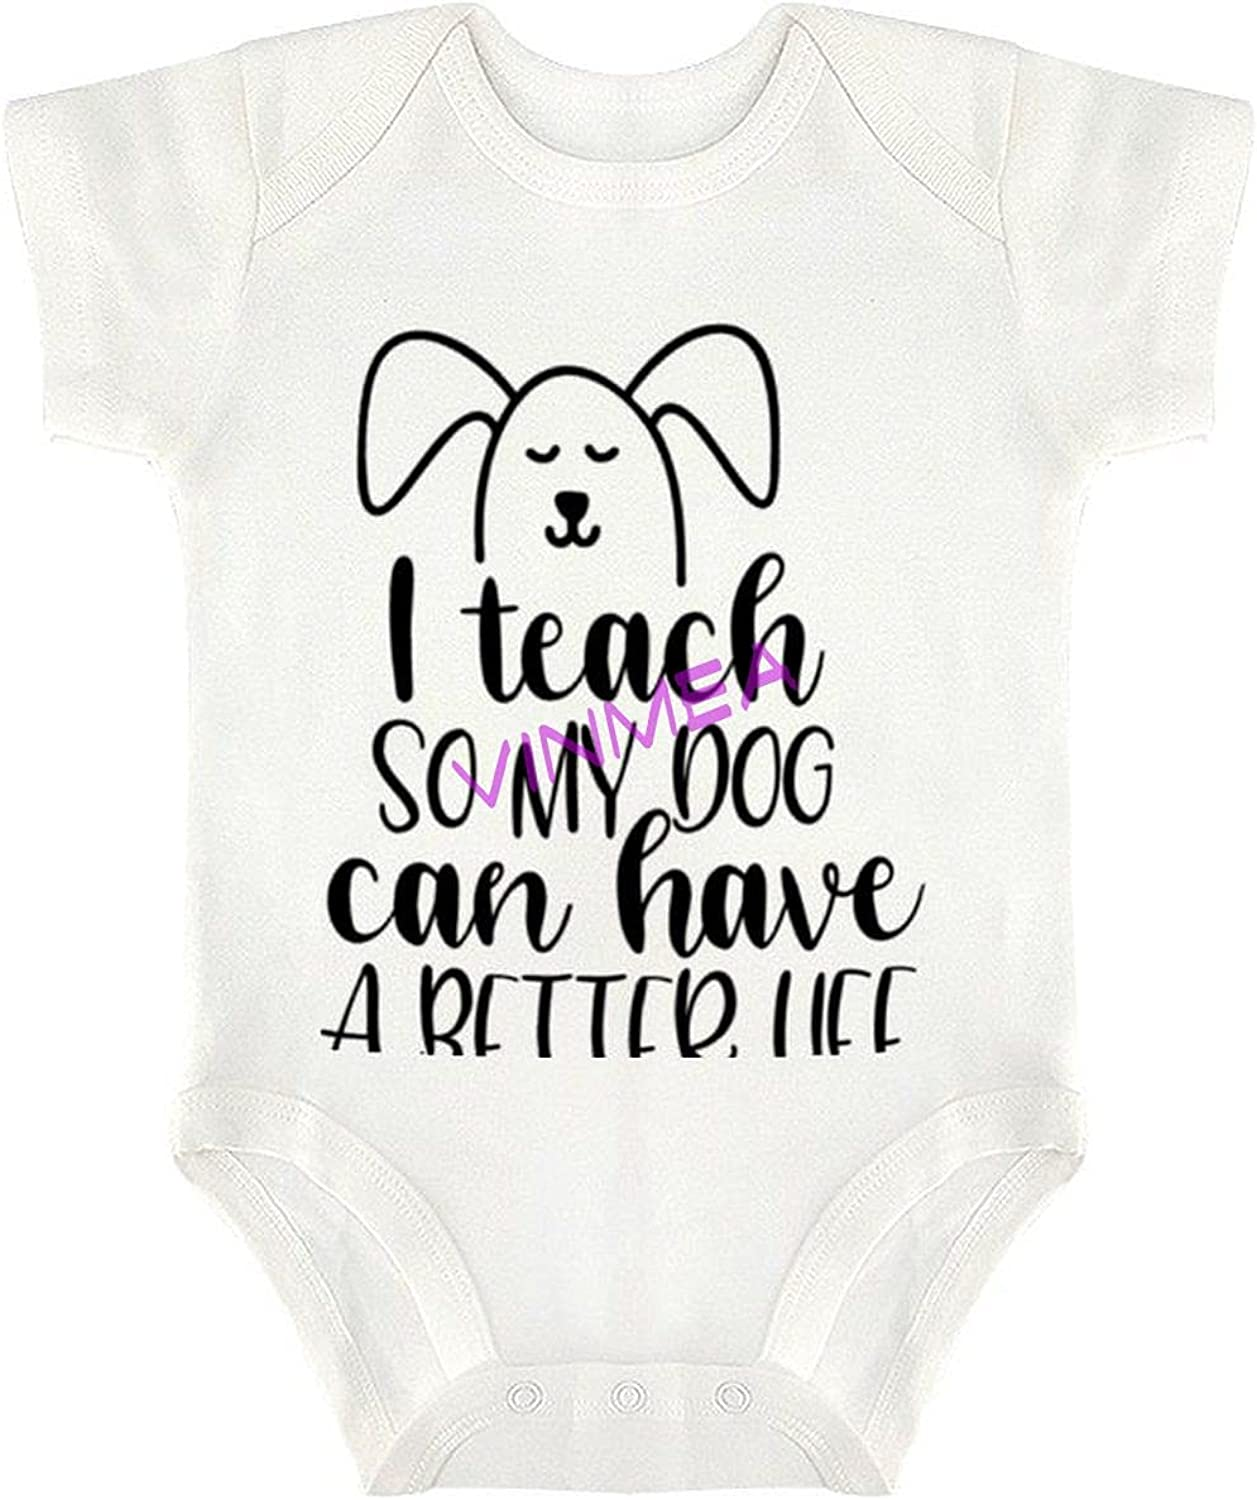 Unisex Al sold out. Baby Short Sleeve I-Teach-So-My-Dog-SVG-Cut-File-600x600 Outlet ☆ Free Shipping